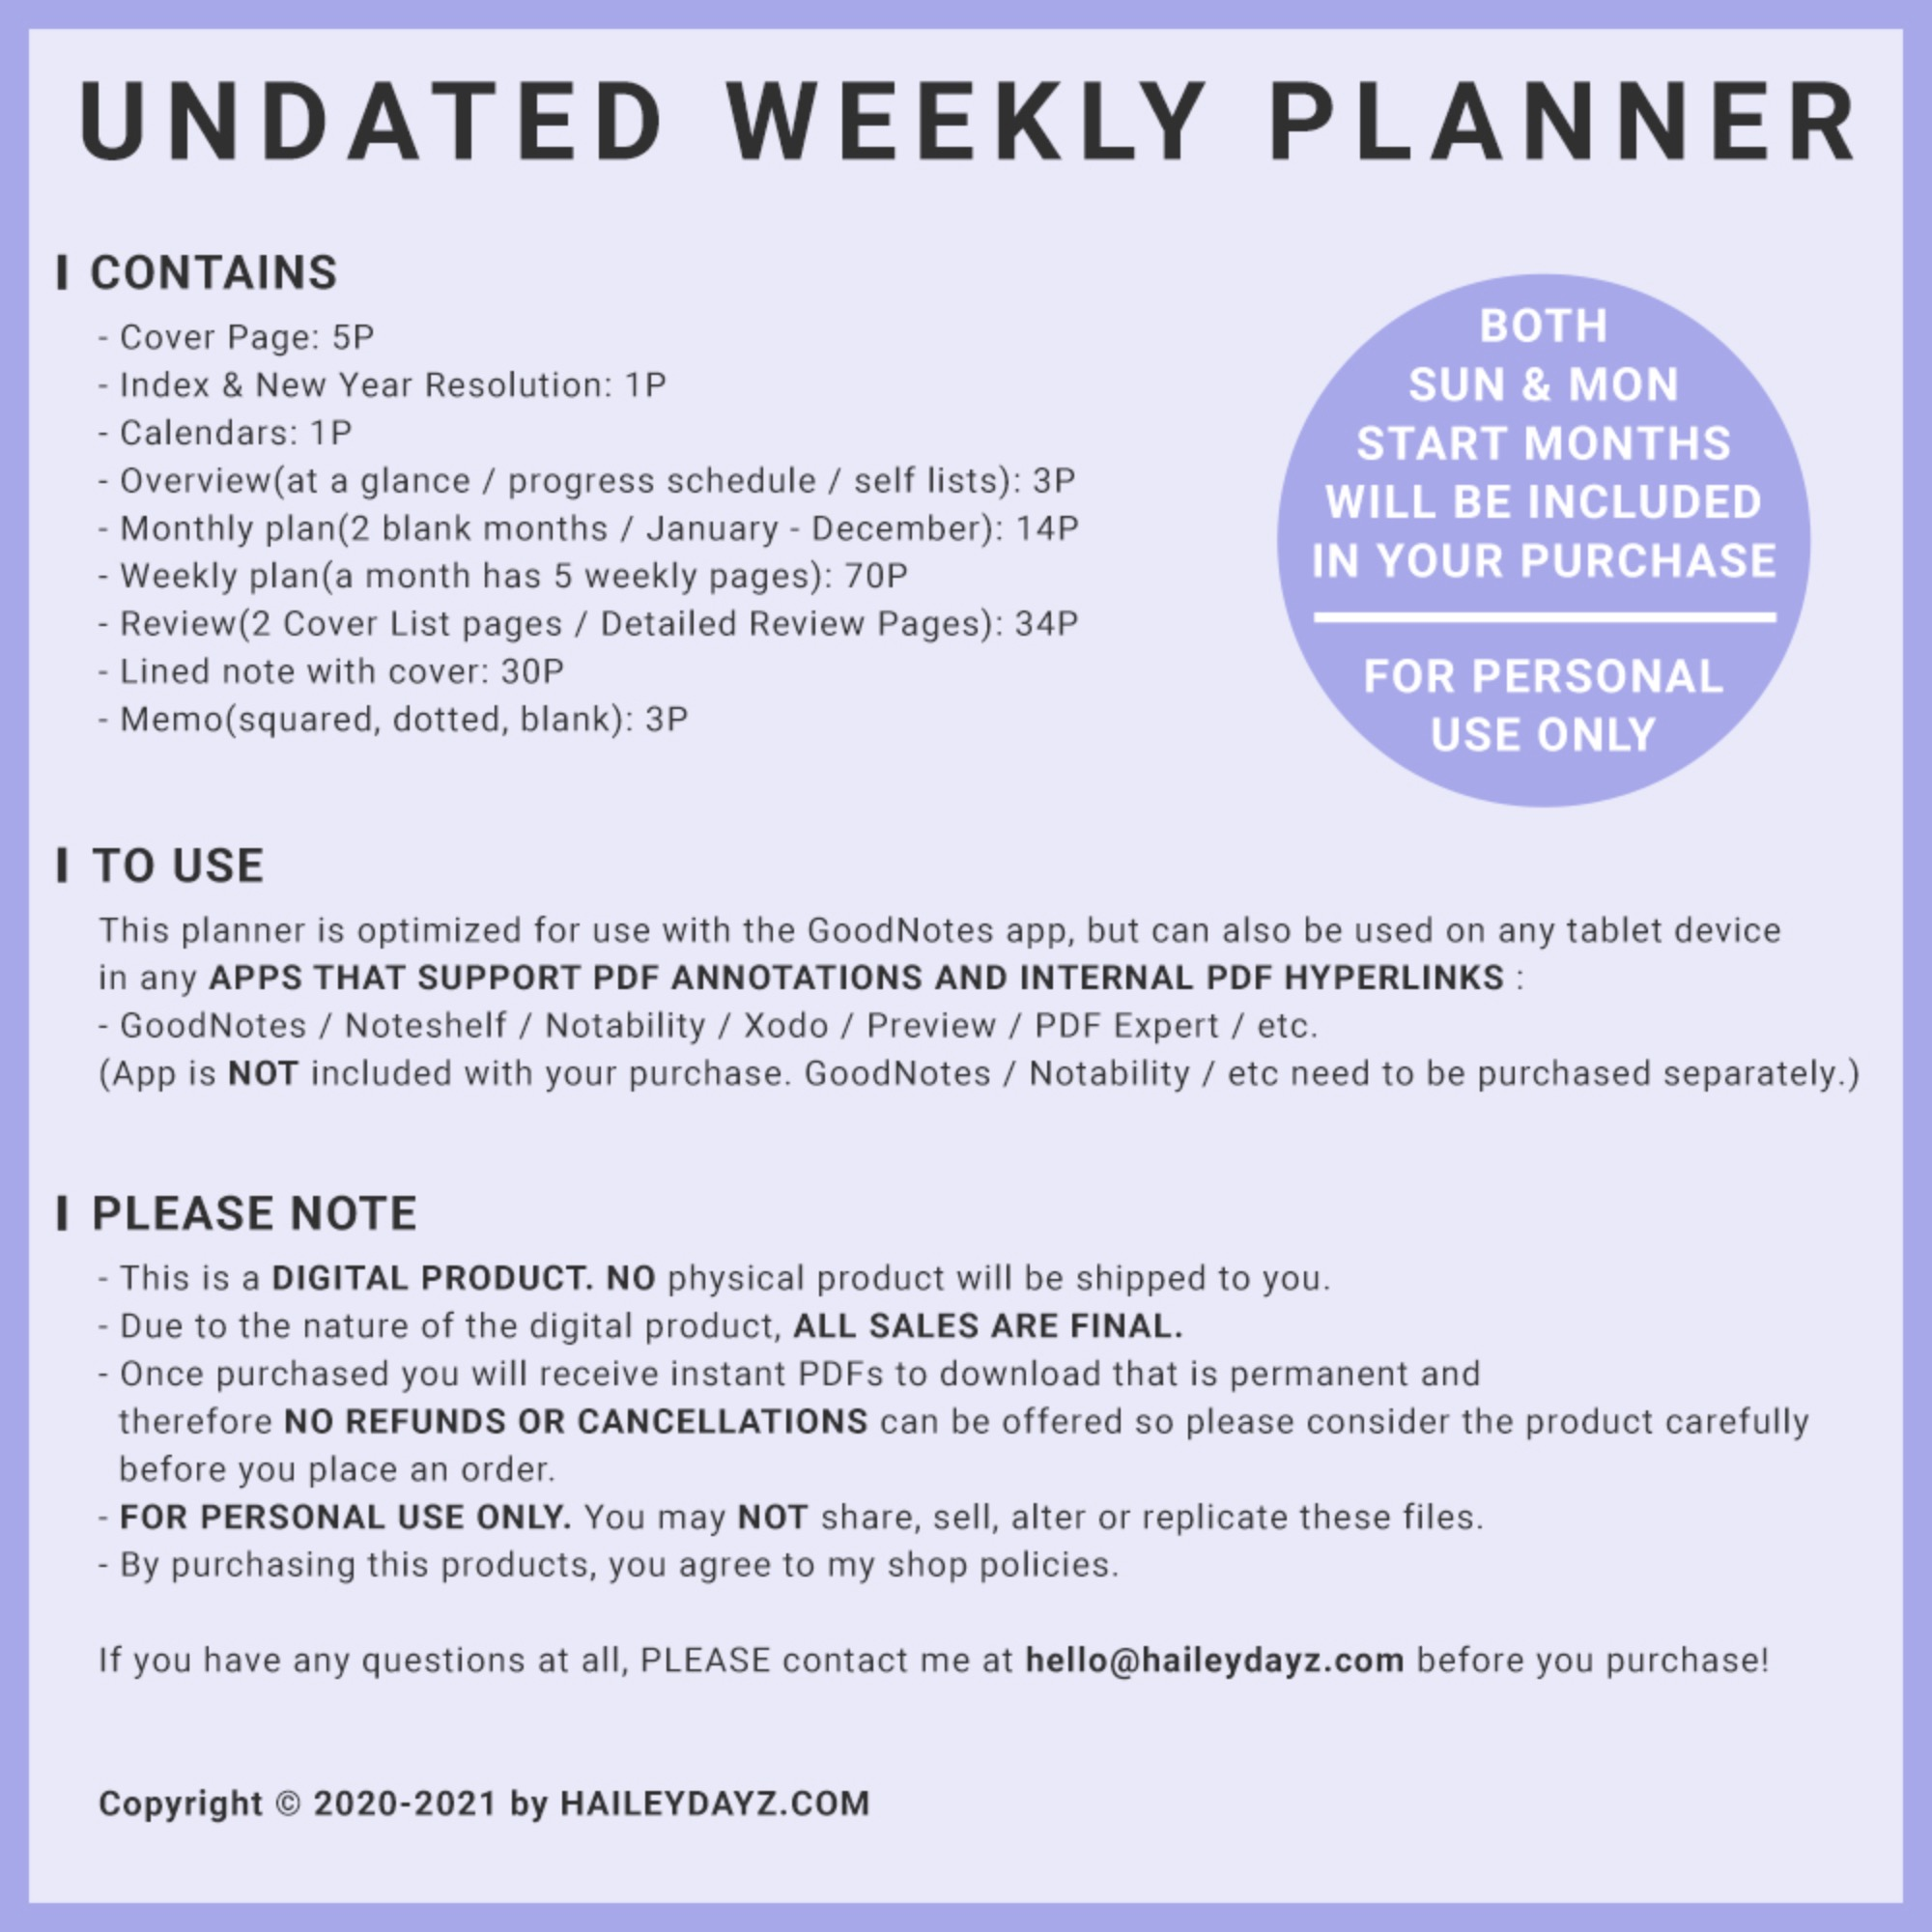 Basic Undated Weekly Planner